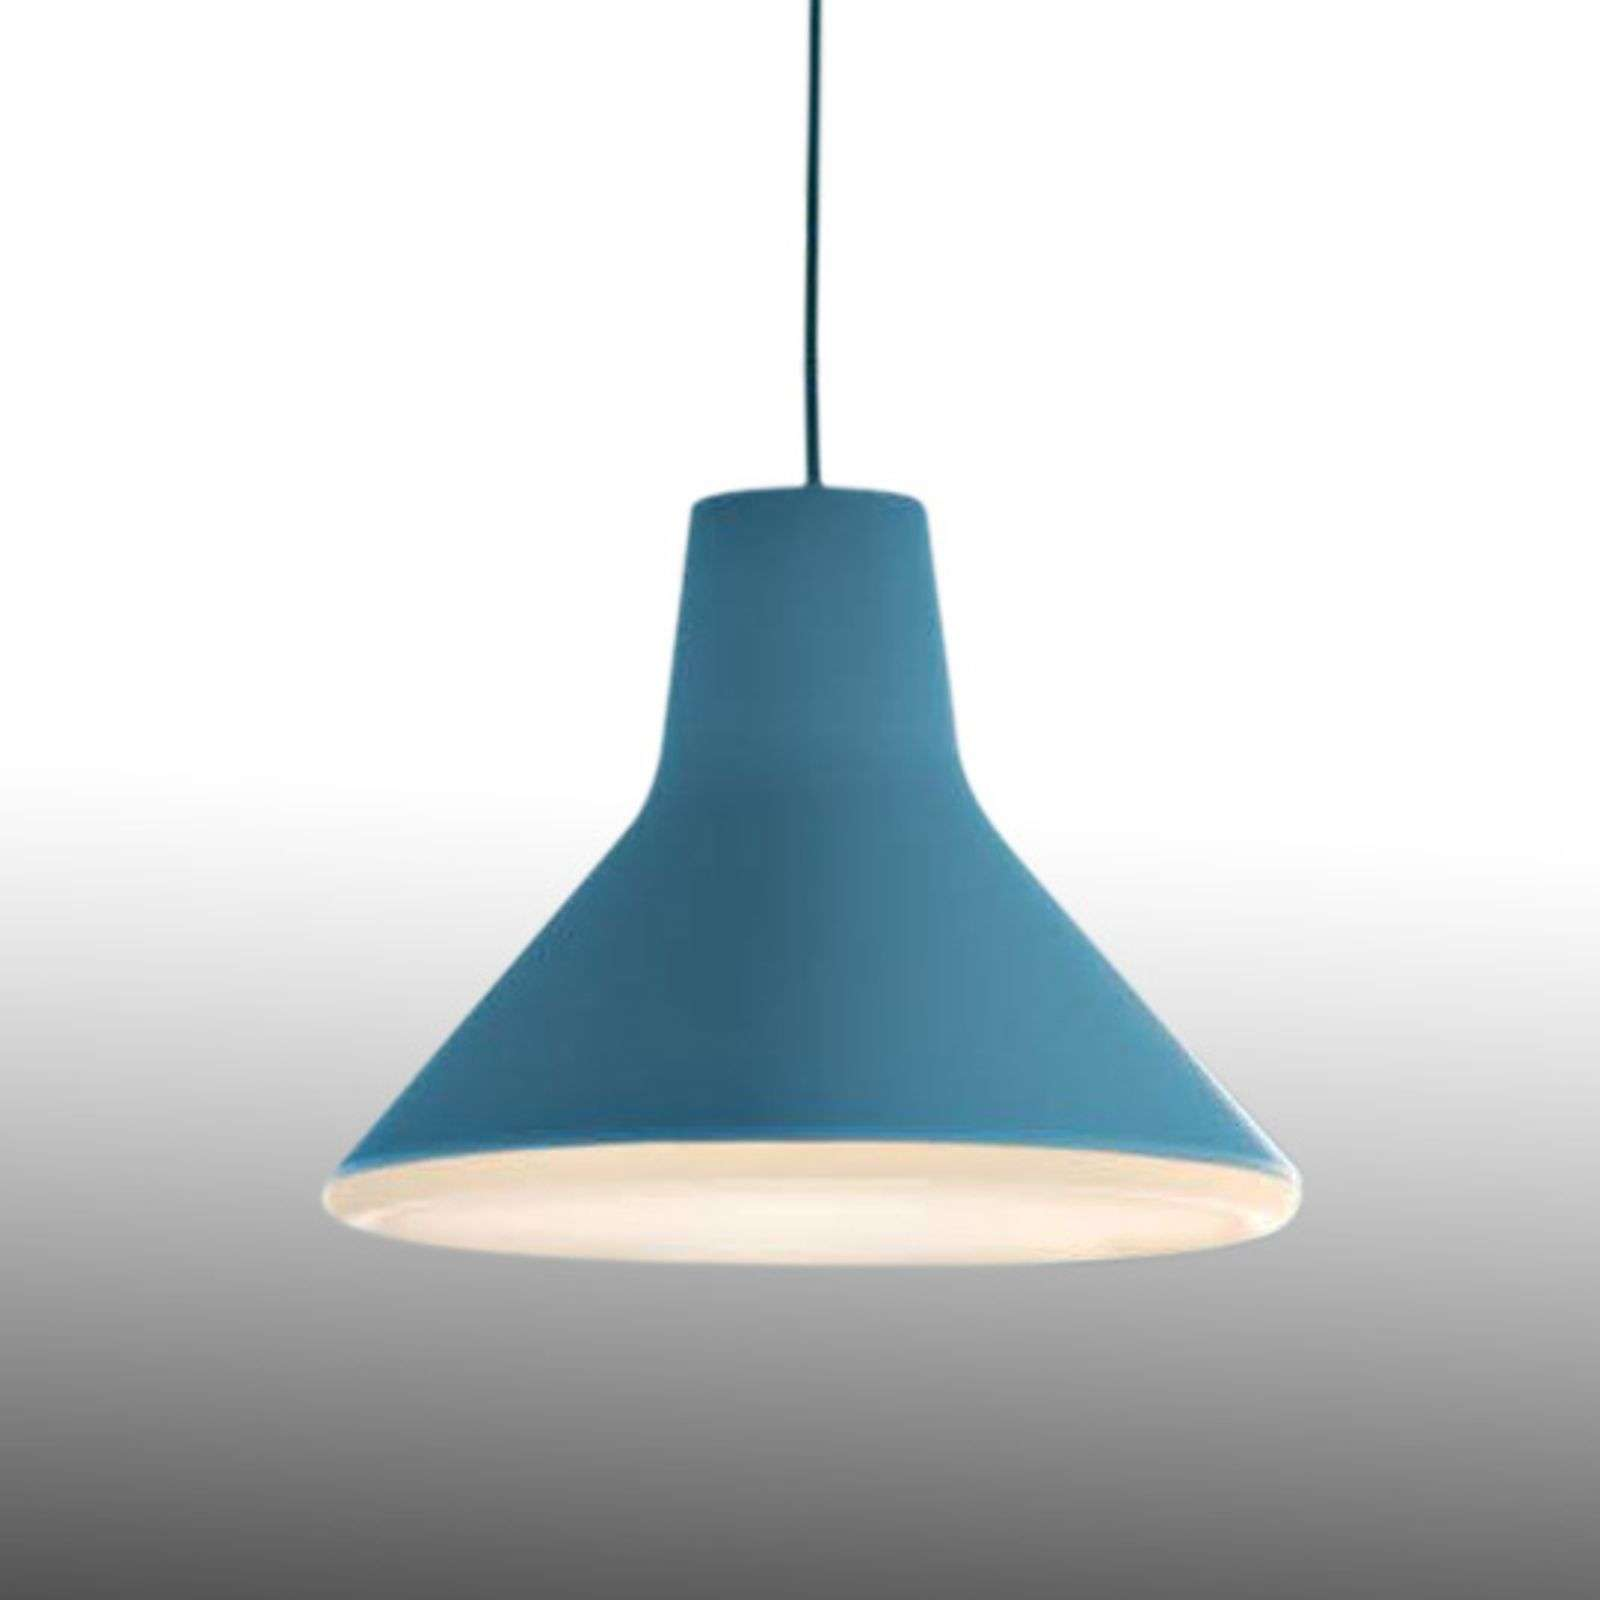 Suspension LED de designer Archetype, bleu clair